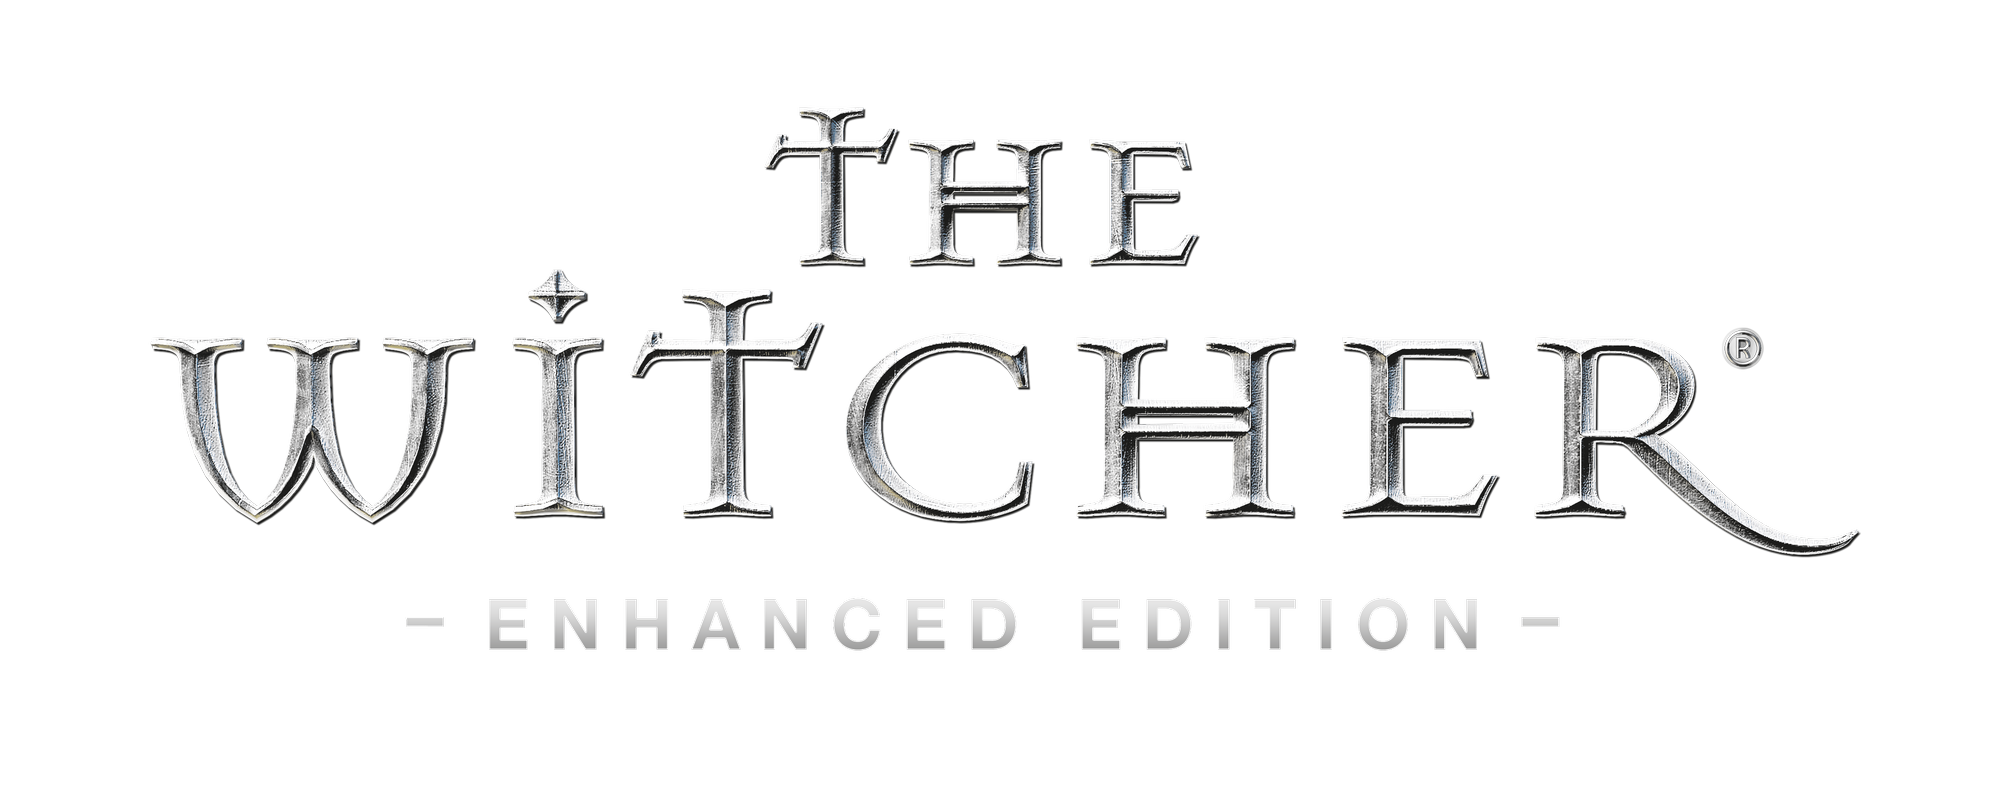 The Witcher Logo Png Image The Witcher Png Images Logo Icons